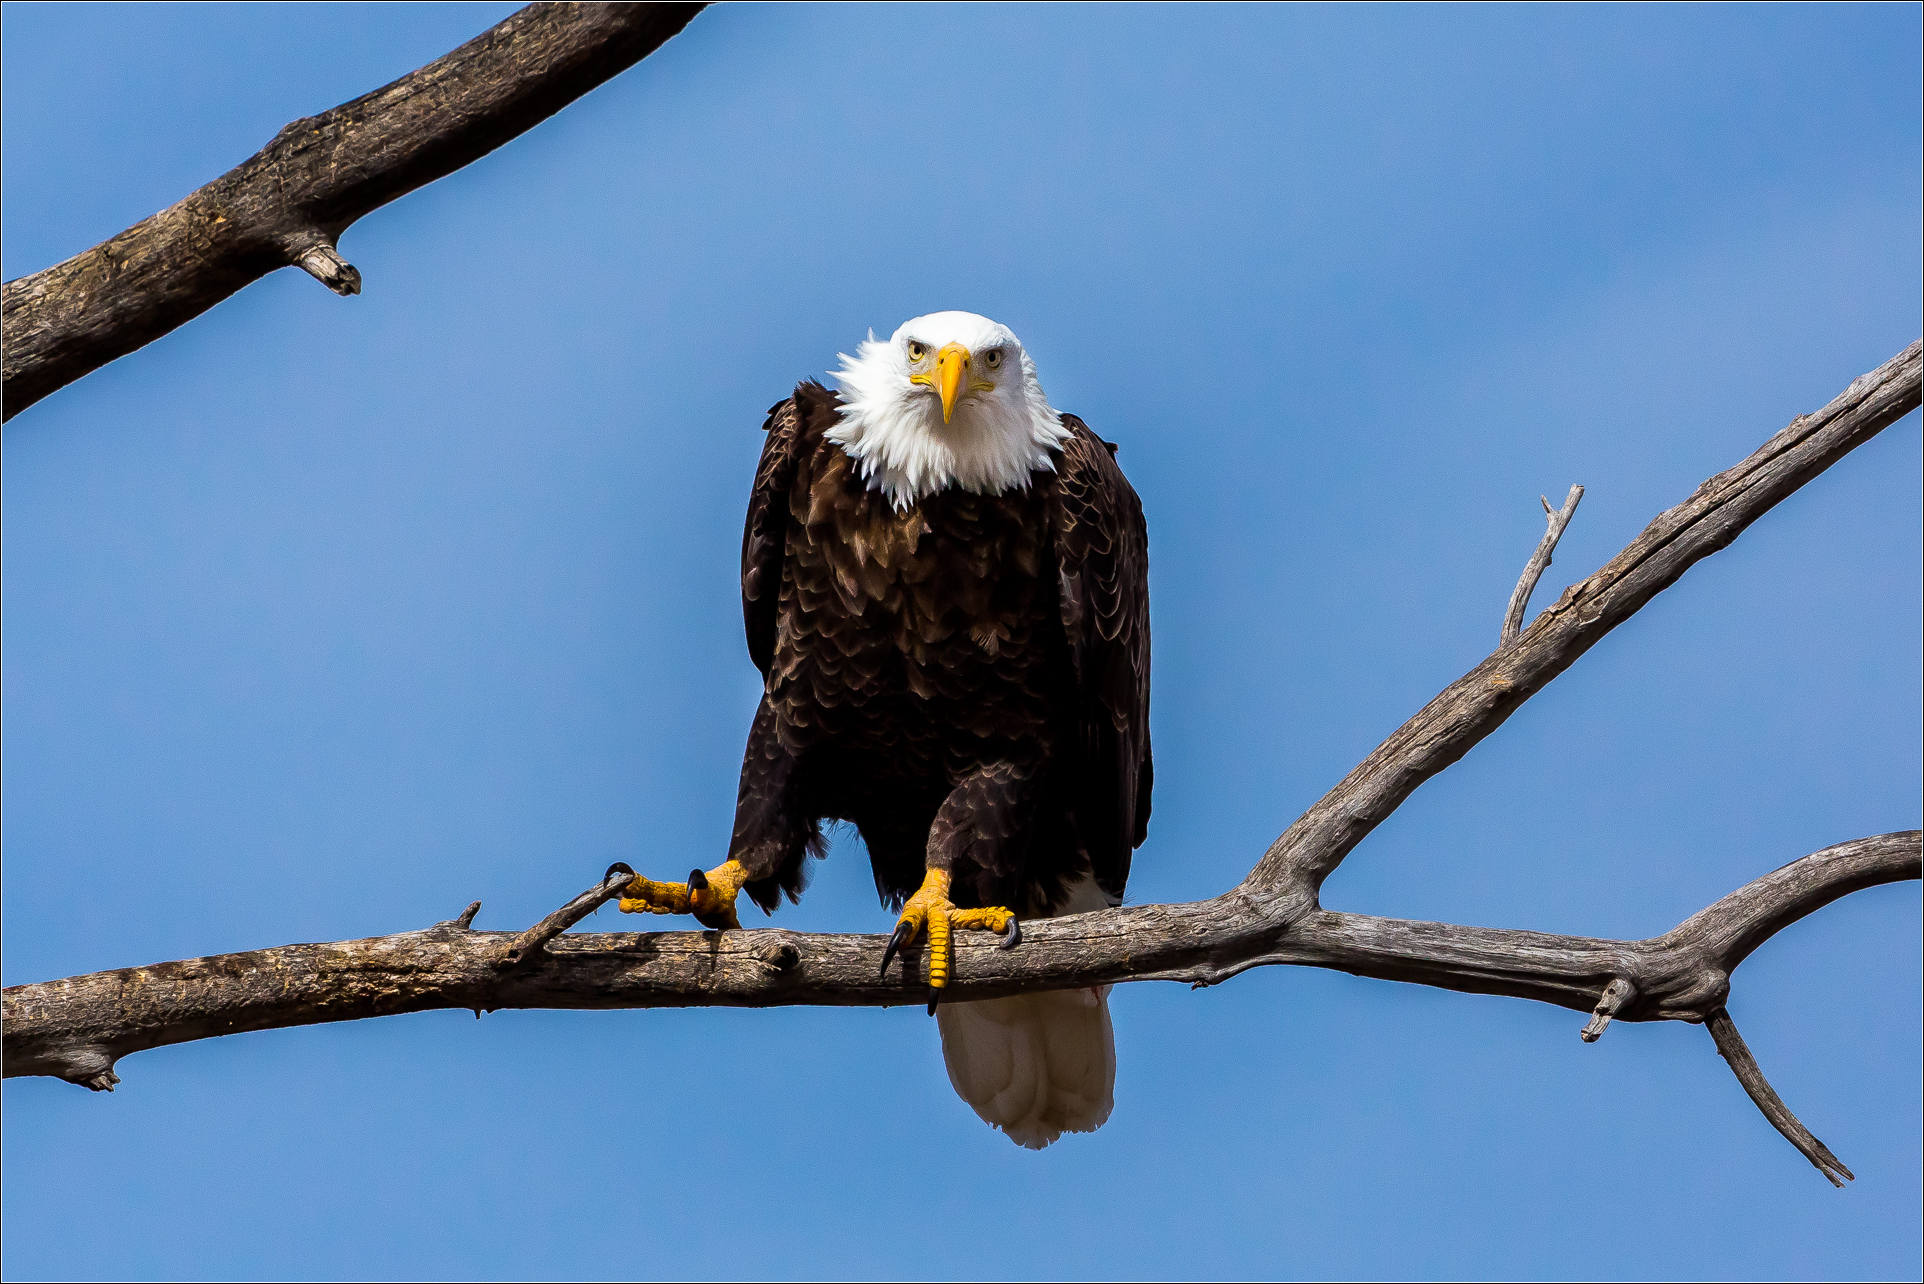 Bald eagle on the branch photo